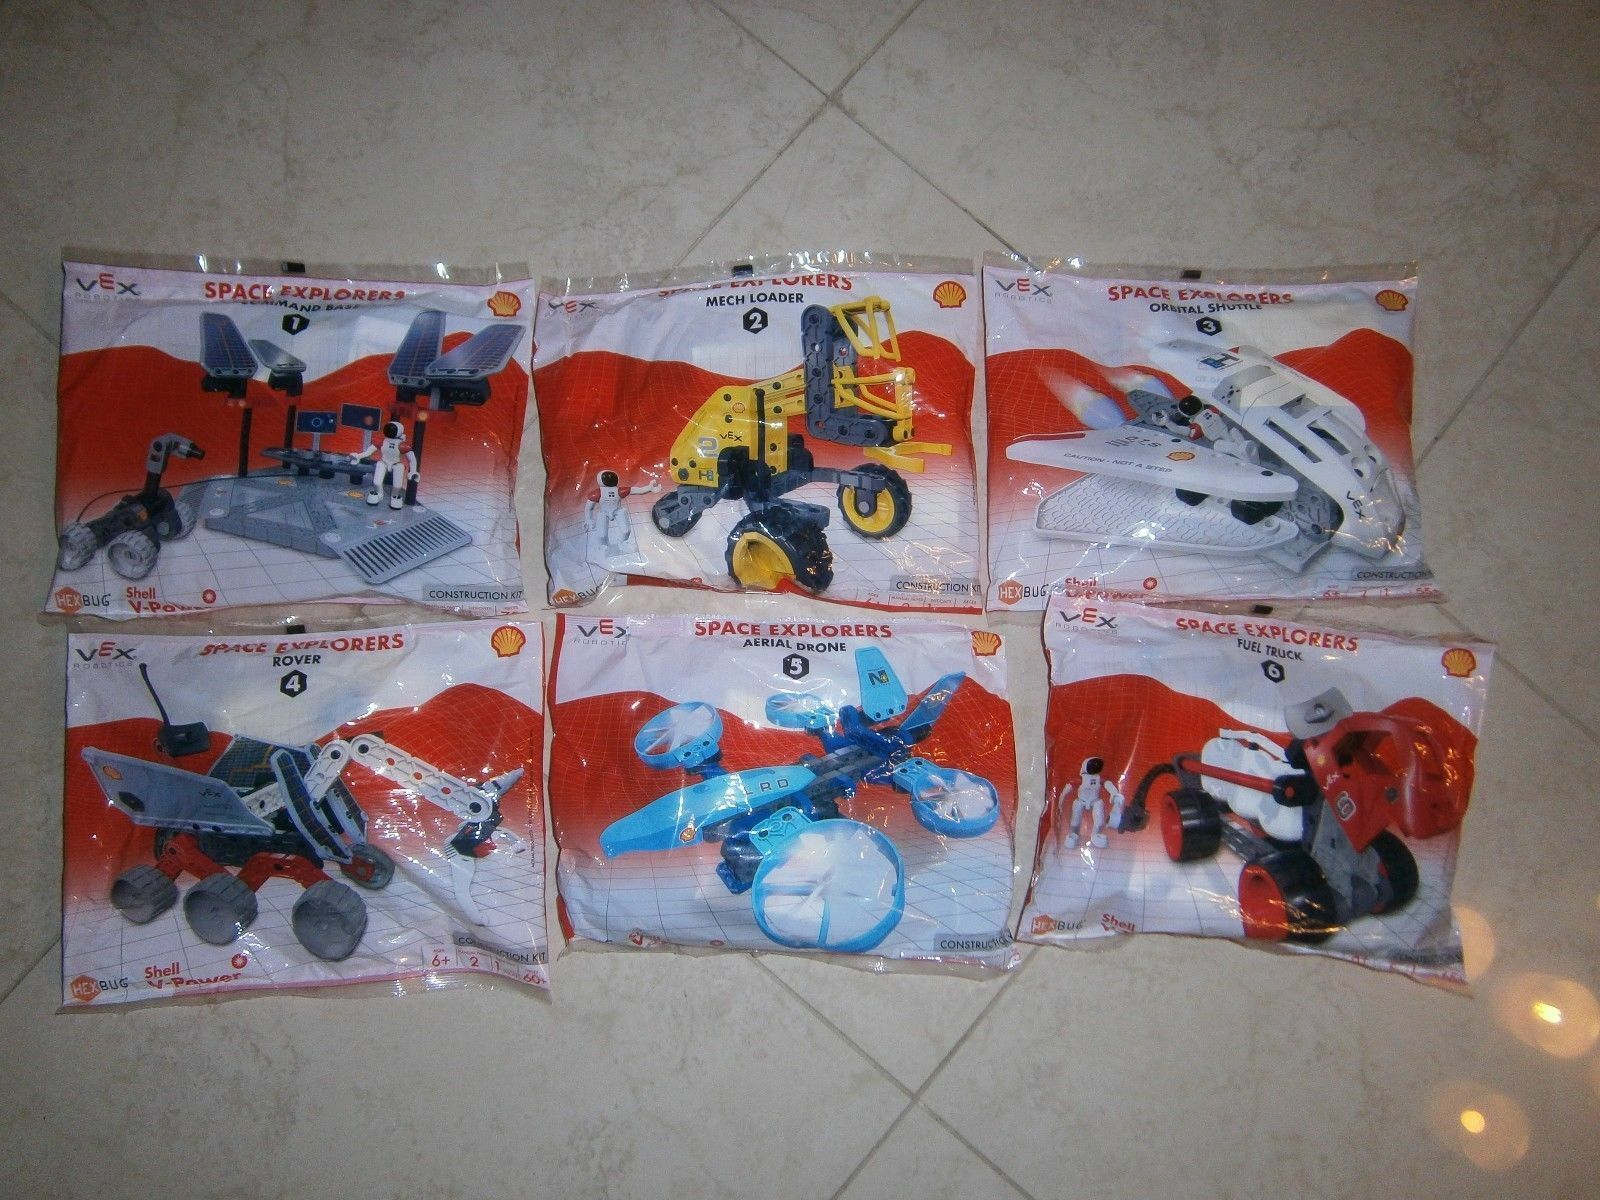 Shell Vex Robotics Space Explorers Complete Set 6 Toy Collection Constuction Kit